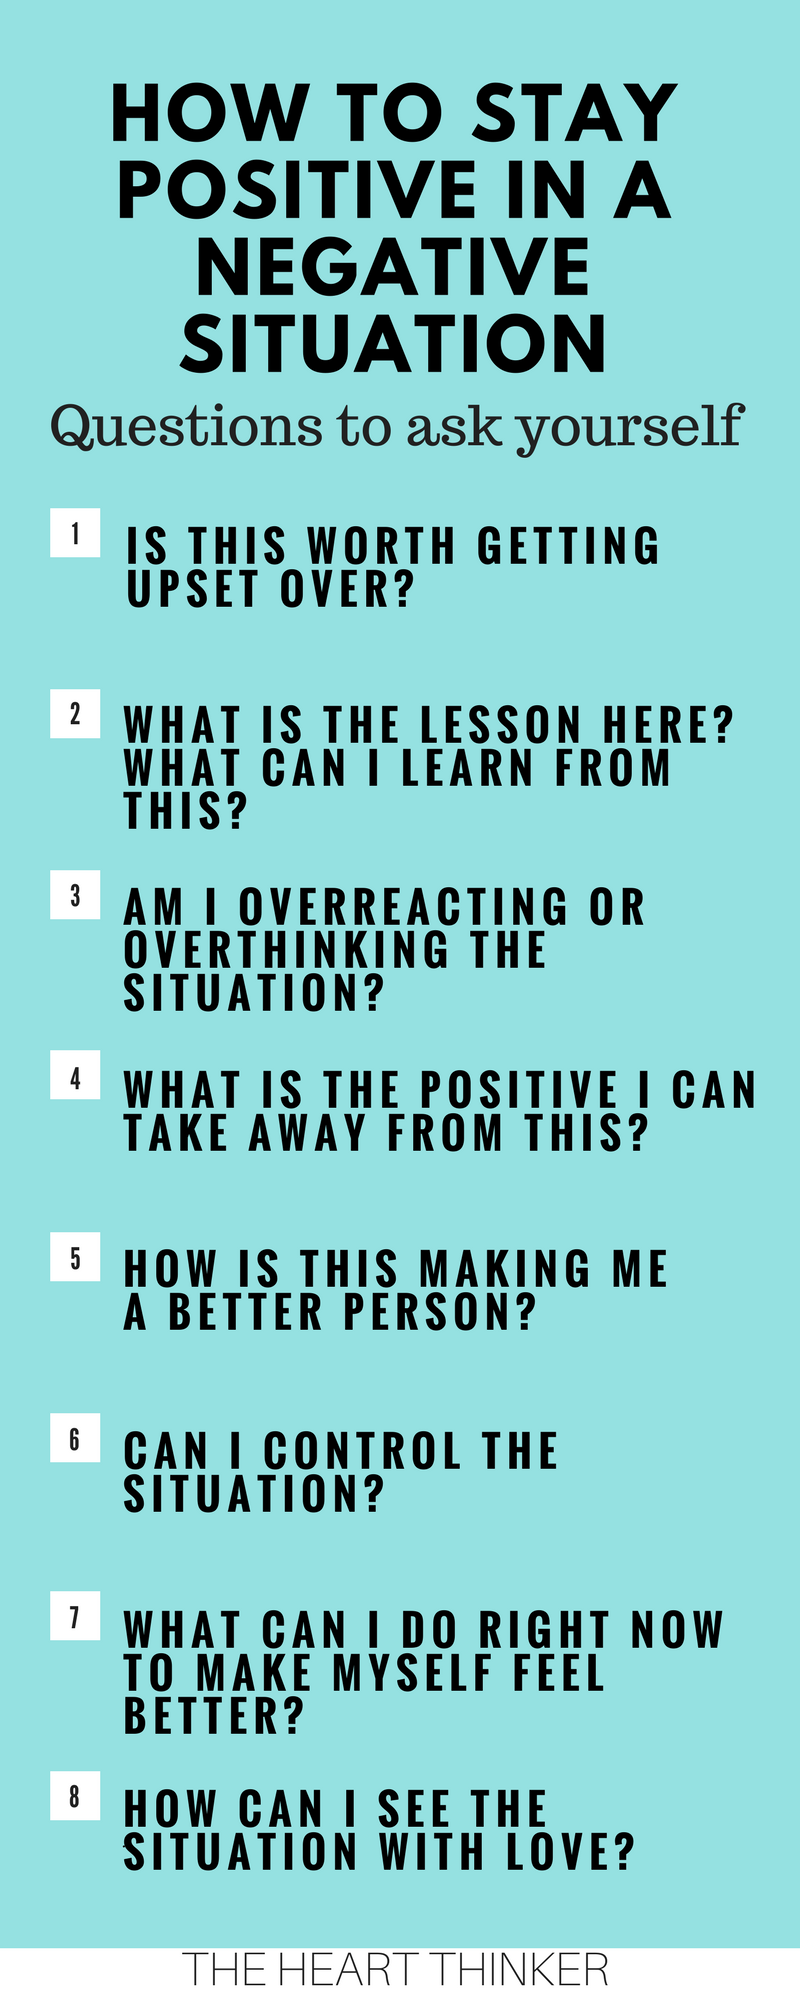 HOW TO STAY POSITIVE IN NEGATIVE SITUATIONS Positivity